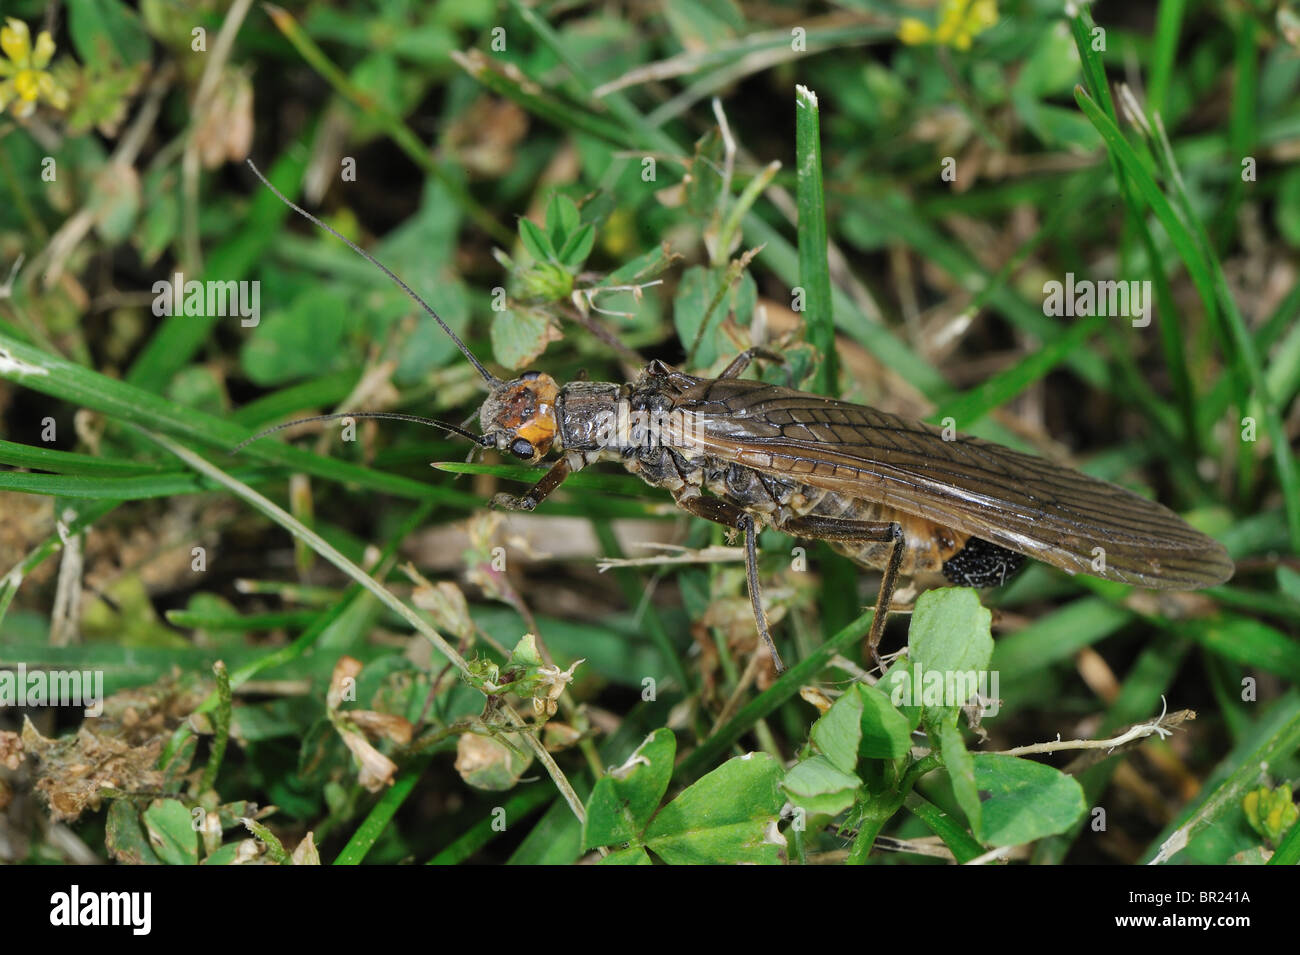 Stonefly (Perla marginata) - female carrying her eggs in a meadow close to a river - Cevennes - France - Stock Image